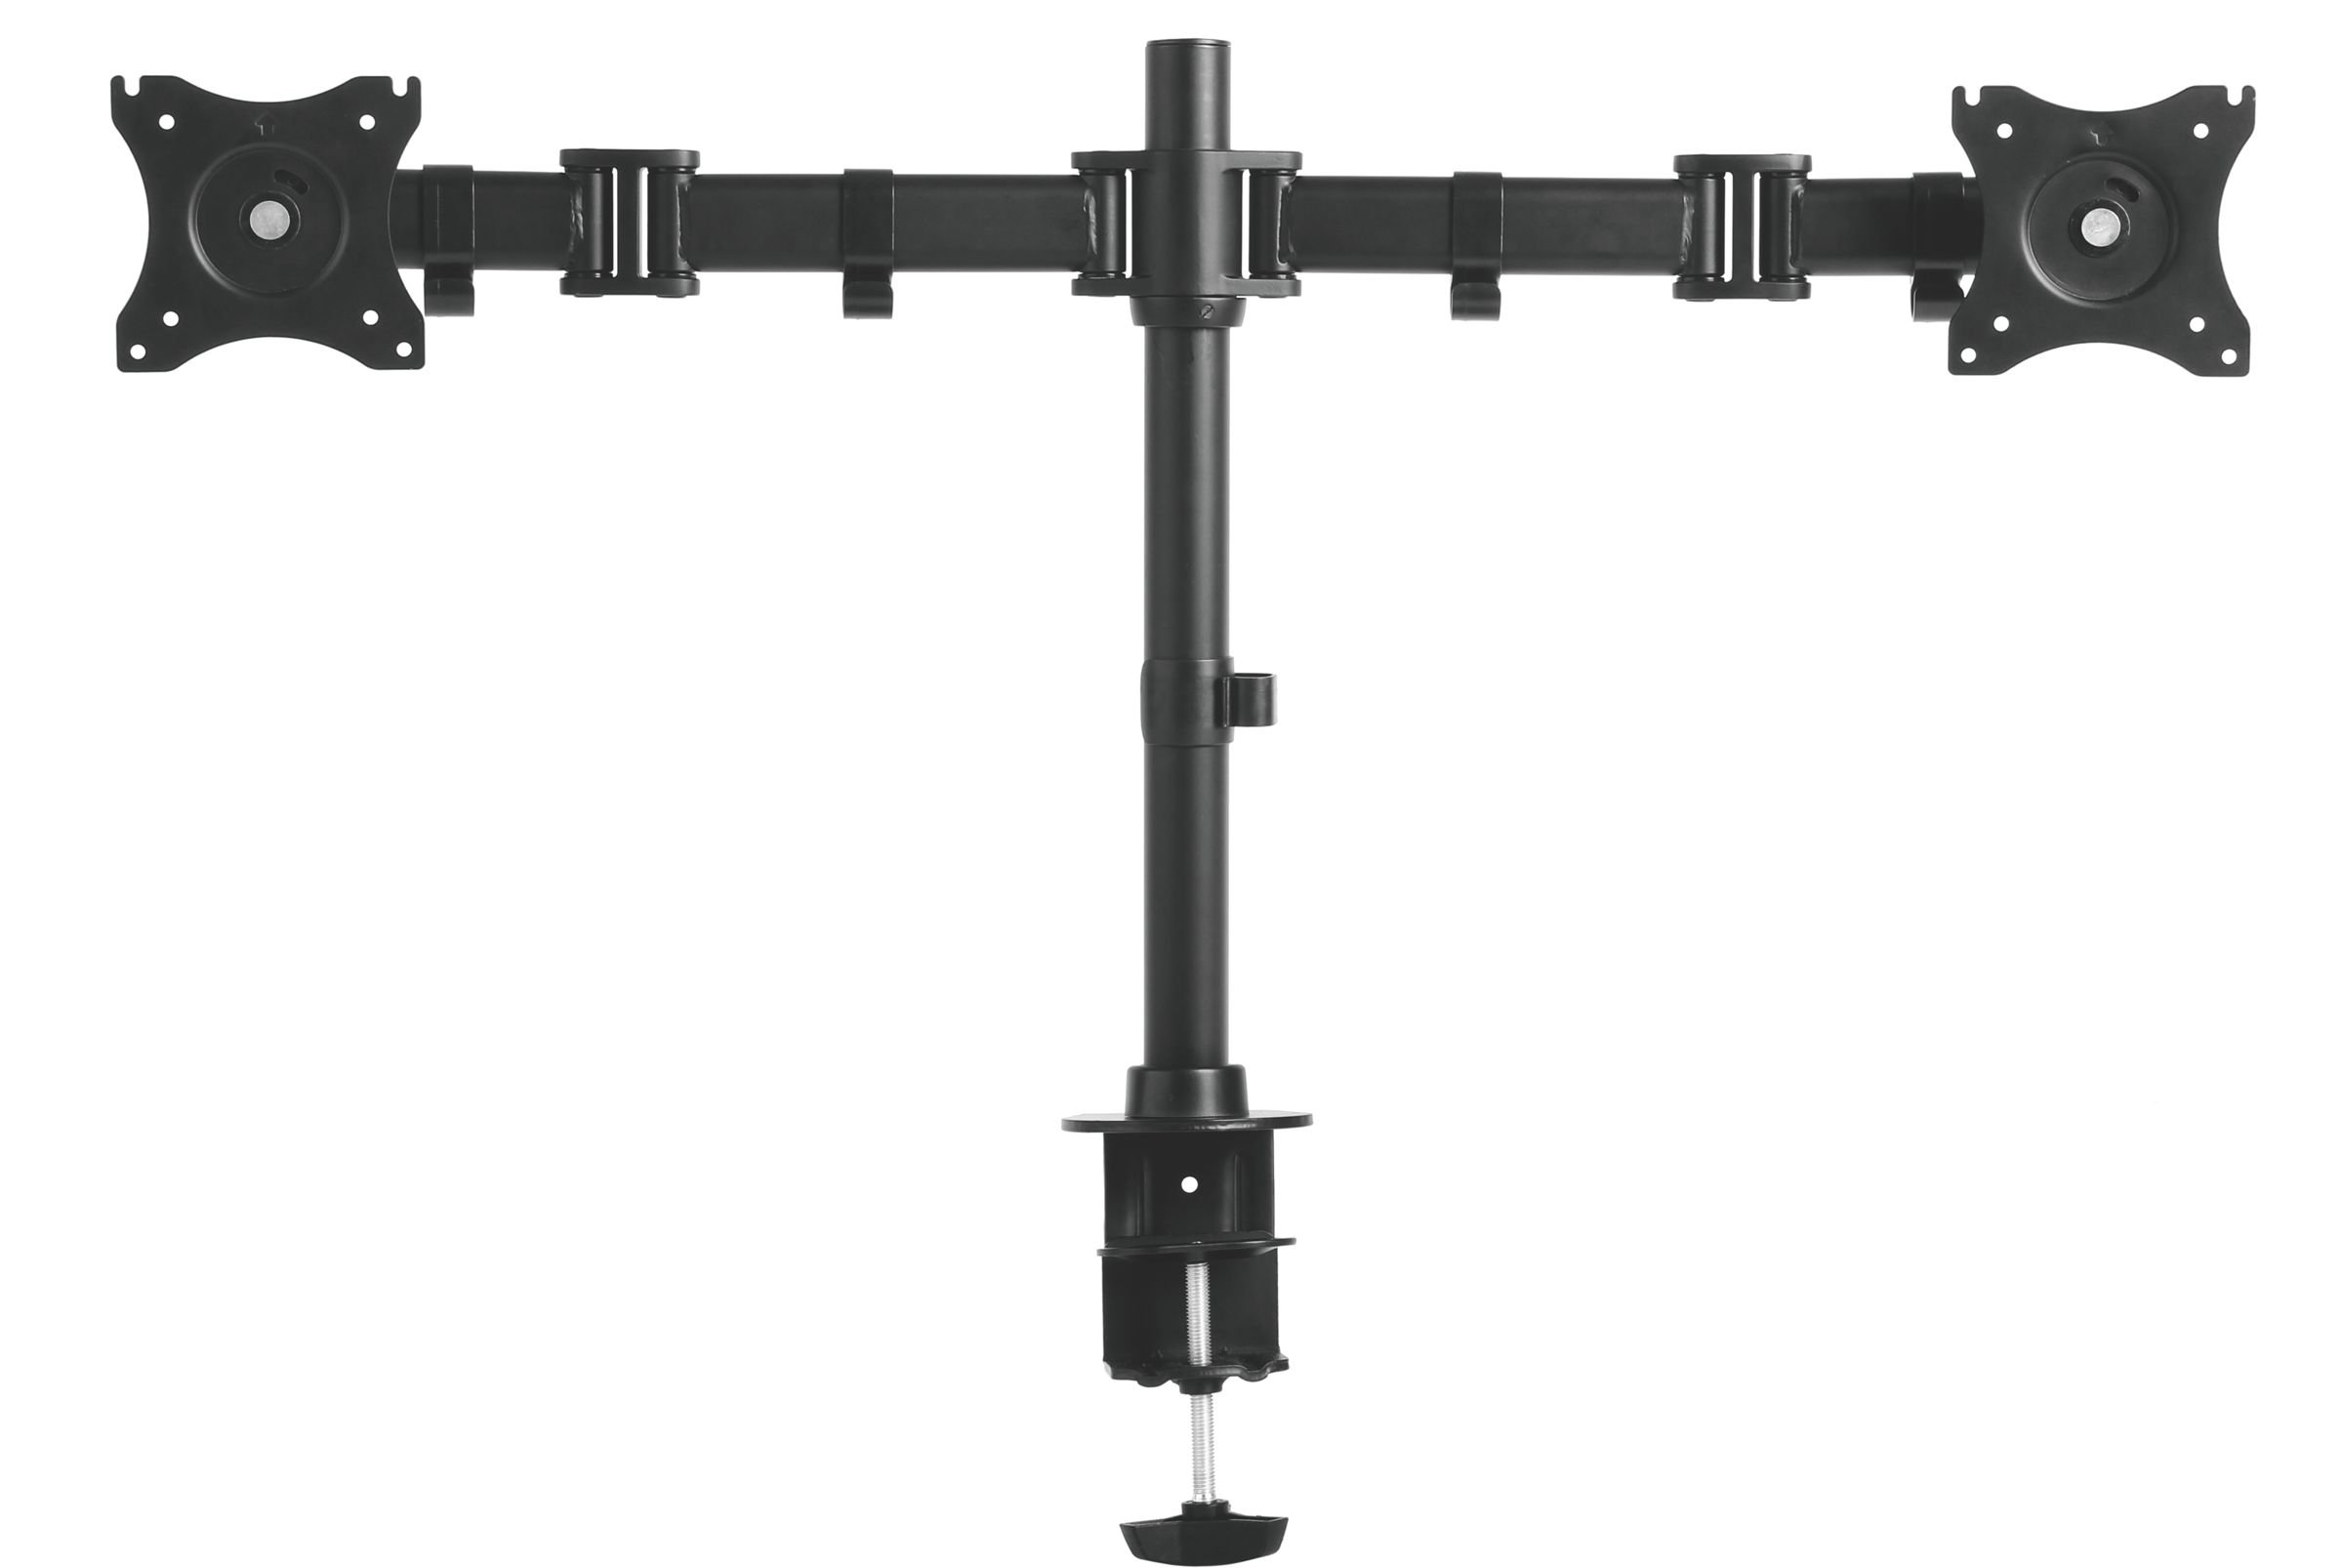 Kantek Height Adjustable Articulating Monitor Arm for Dual Monitors, Black (MA220)